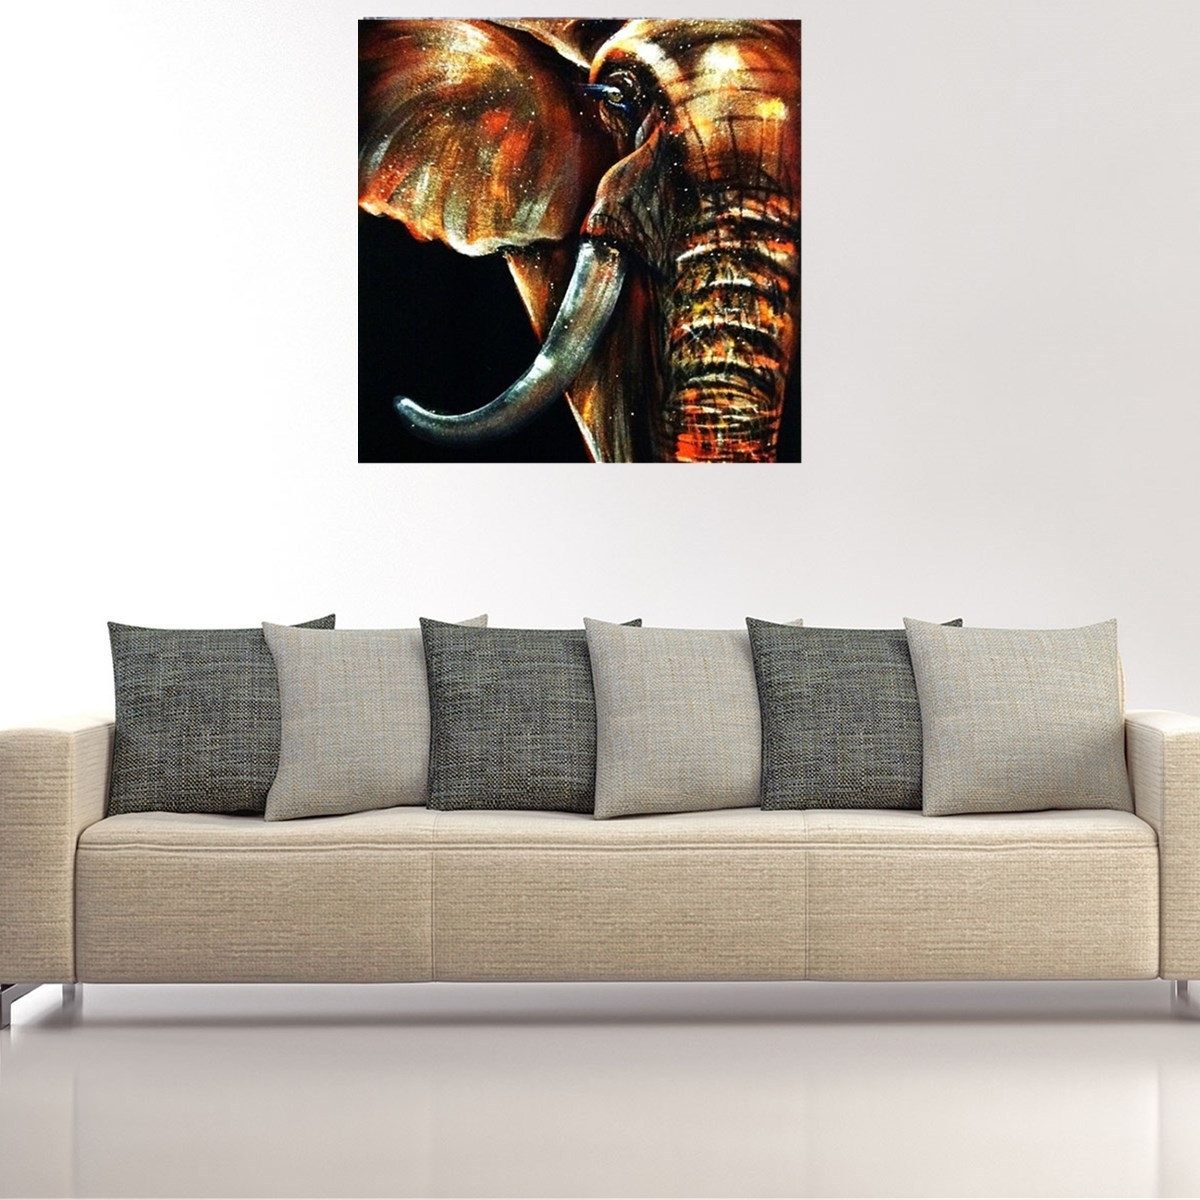 50X50Cm Modern Abstract Huge Elephant Wall Art Decor Oil Painting On Within Recent Elephant Canvas Wall Art (View 6 of 20)